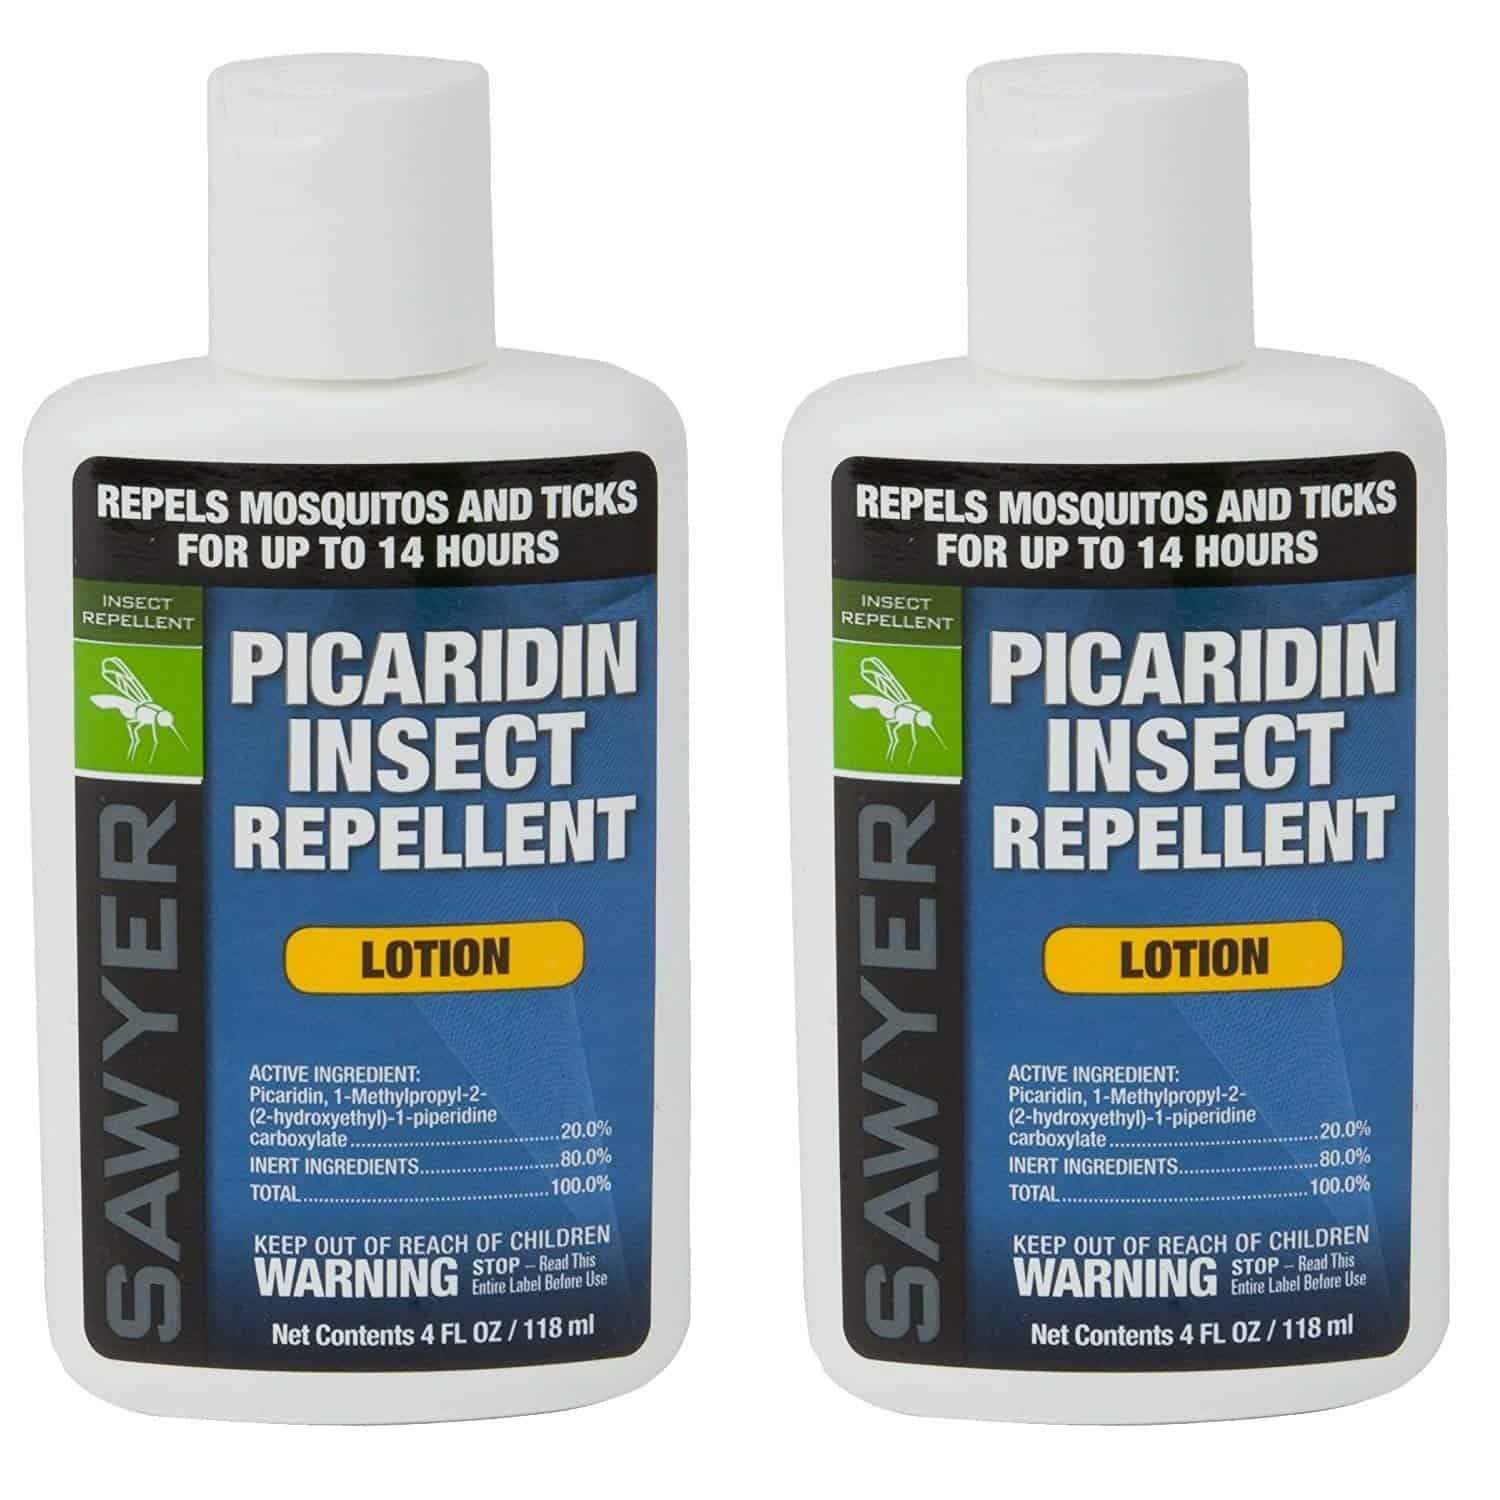 Sawyer Products Premium Insect Repellent Review